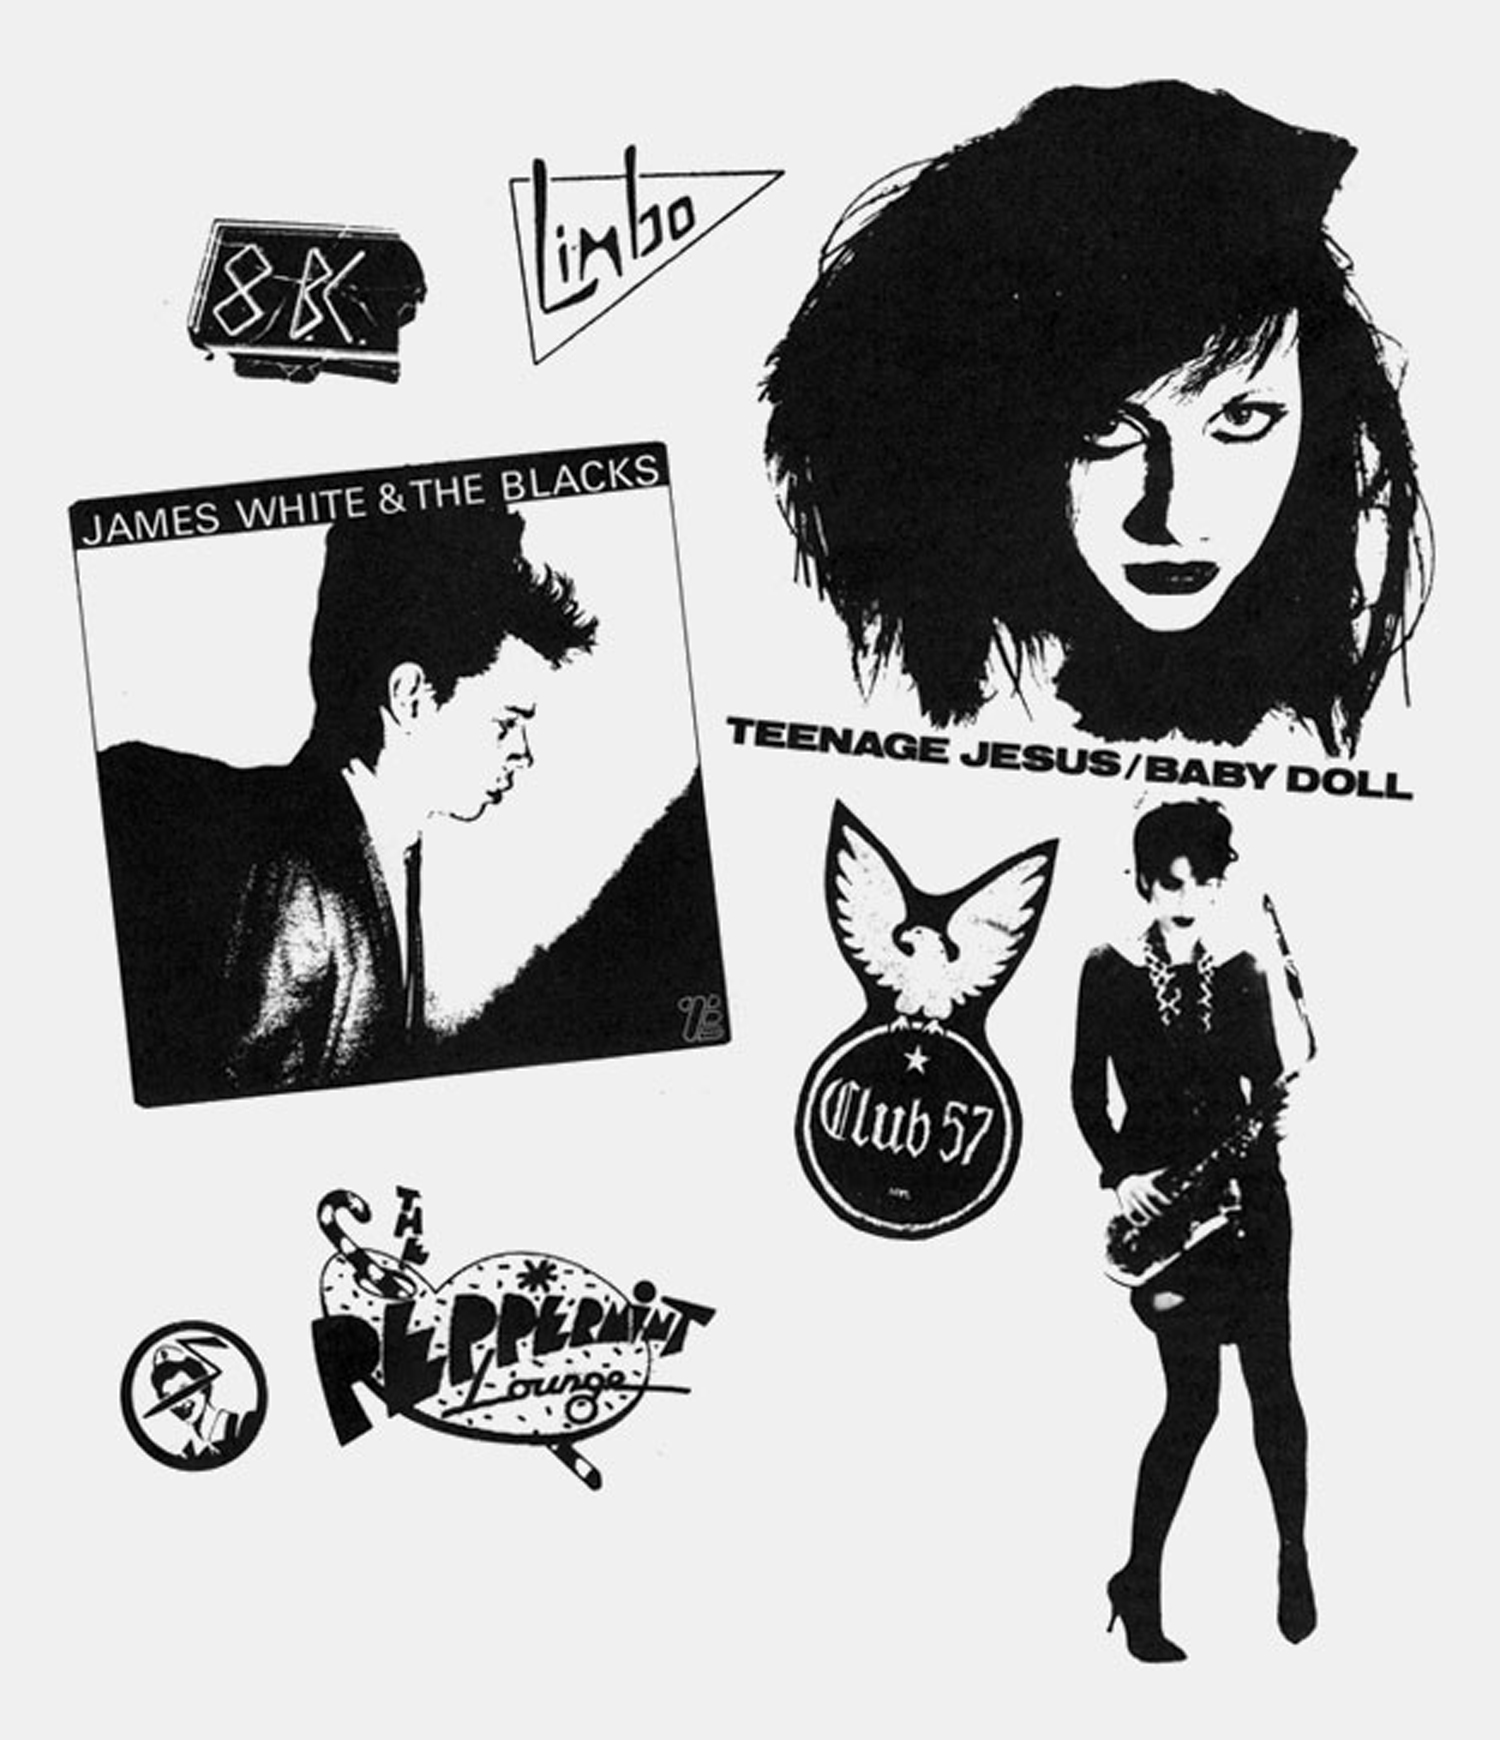 Logos from various New york City nightclubs, past and present; James White and the Blacks record cover, 1978. Cover photo by Jimmy de Sana; Record cover featuring Lydia Lunch of Teenage Jesus. Design by J. Gorton; Lisa Rosen models in design by Edit deAk